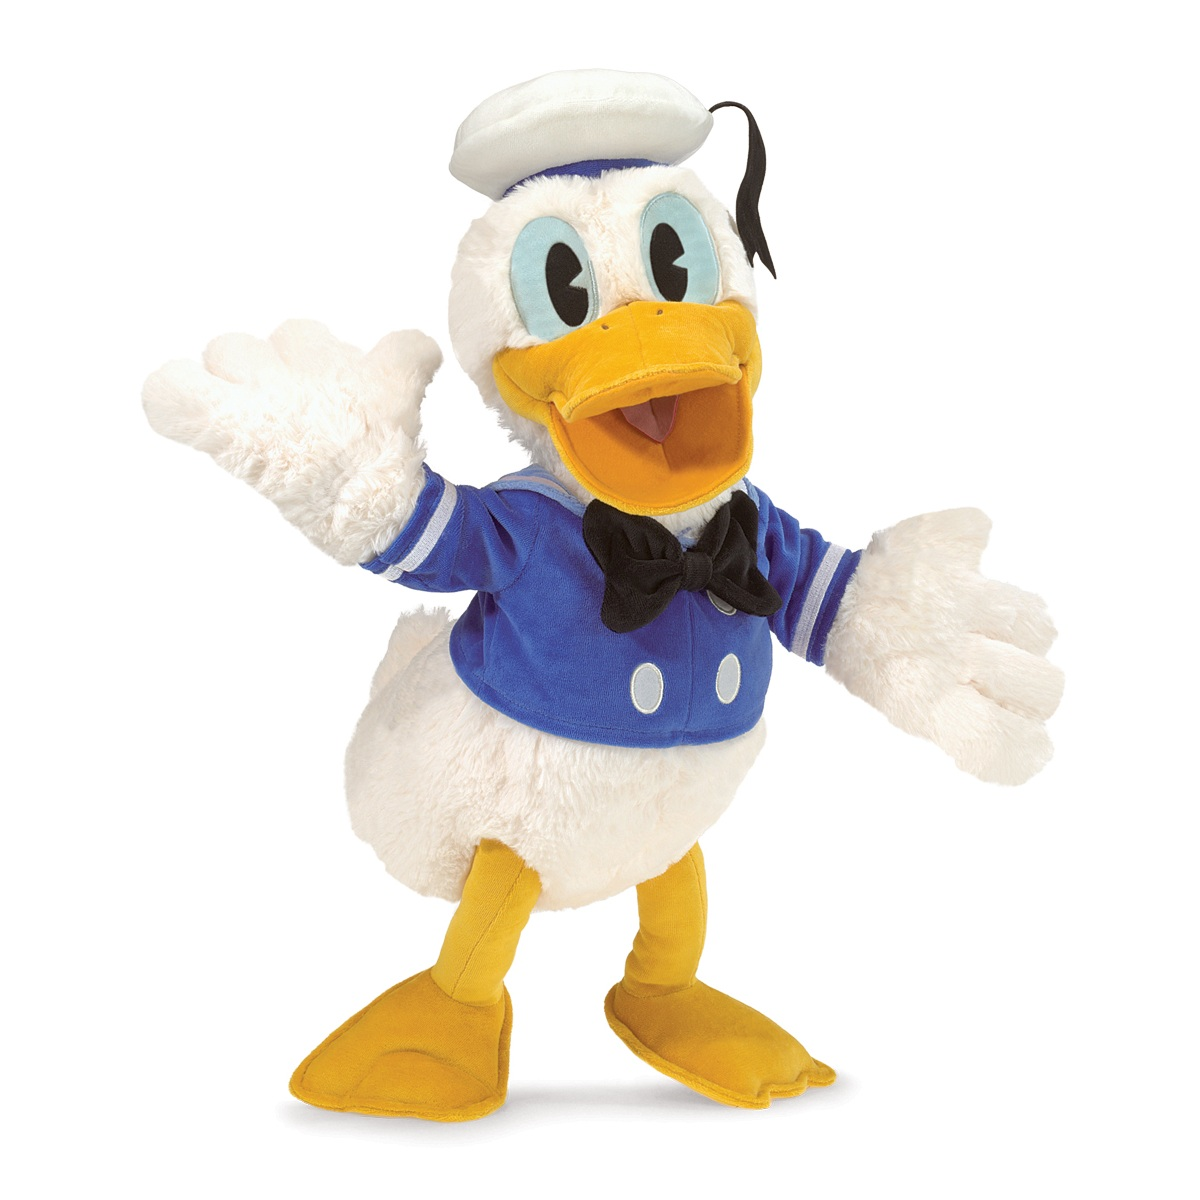 Disney Donald Duck Hand Puppet by Folkmanis 5007